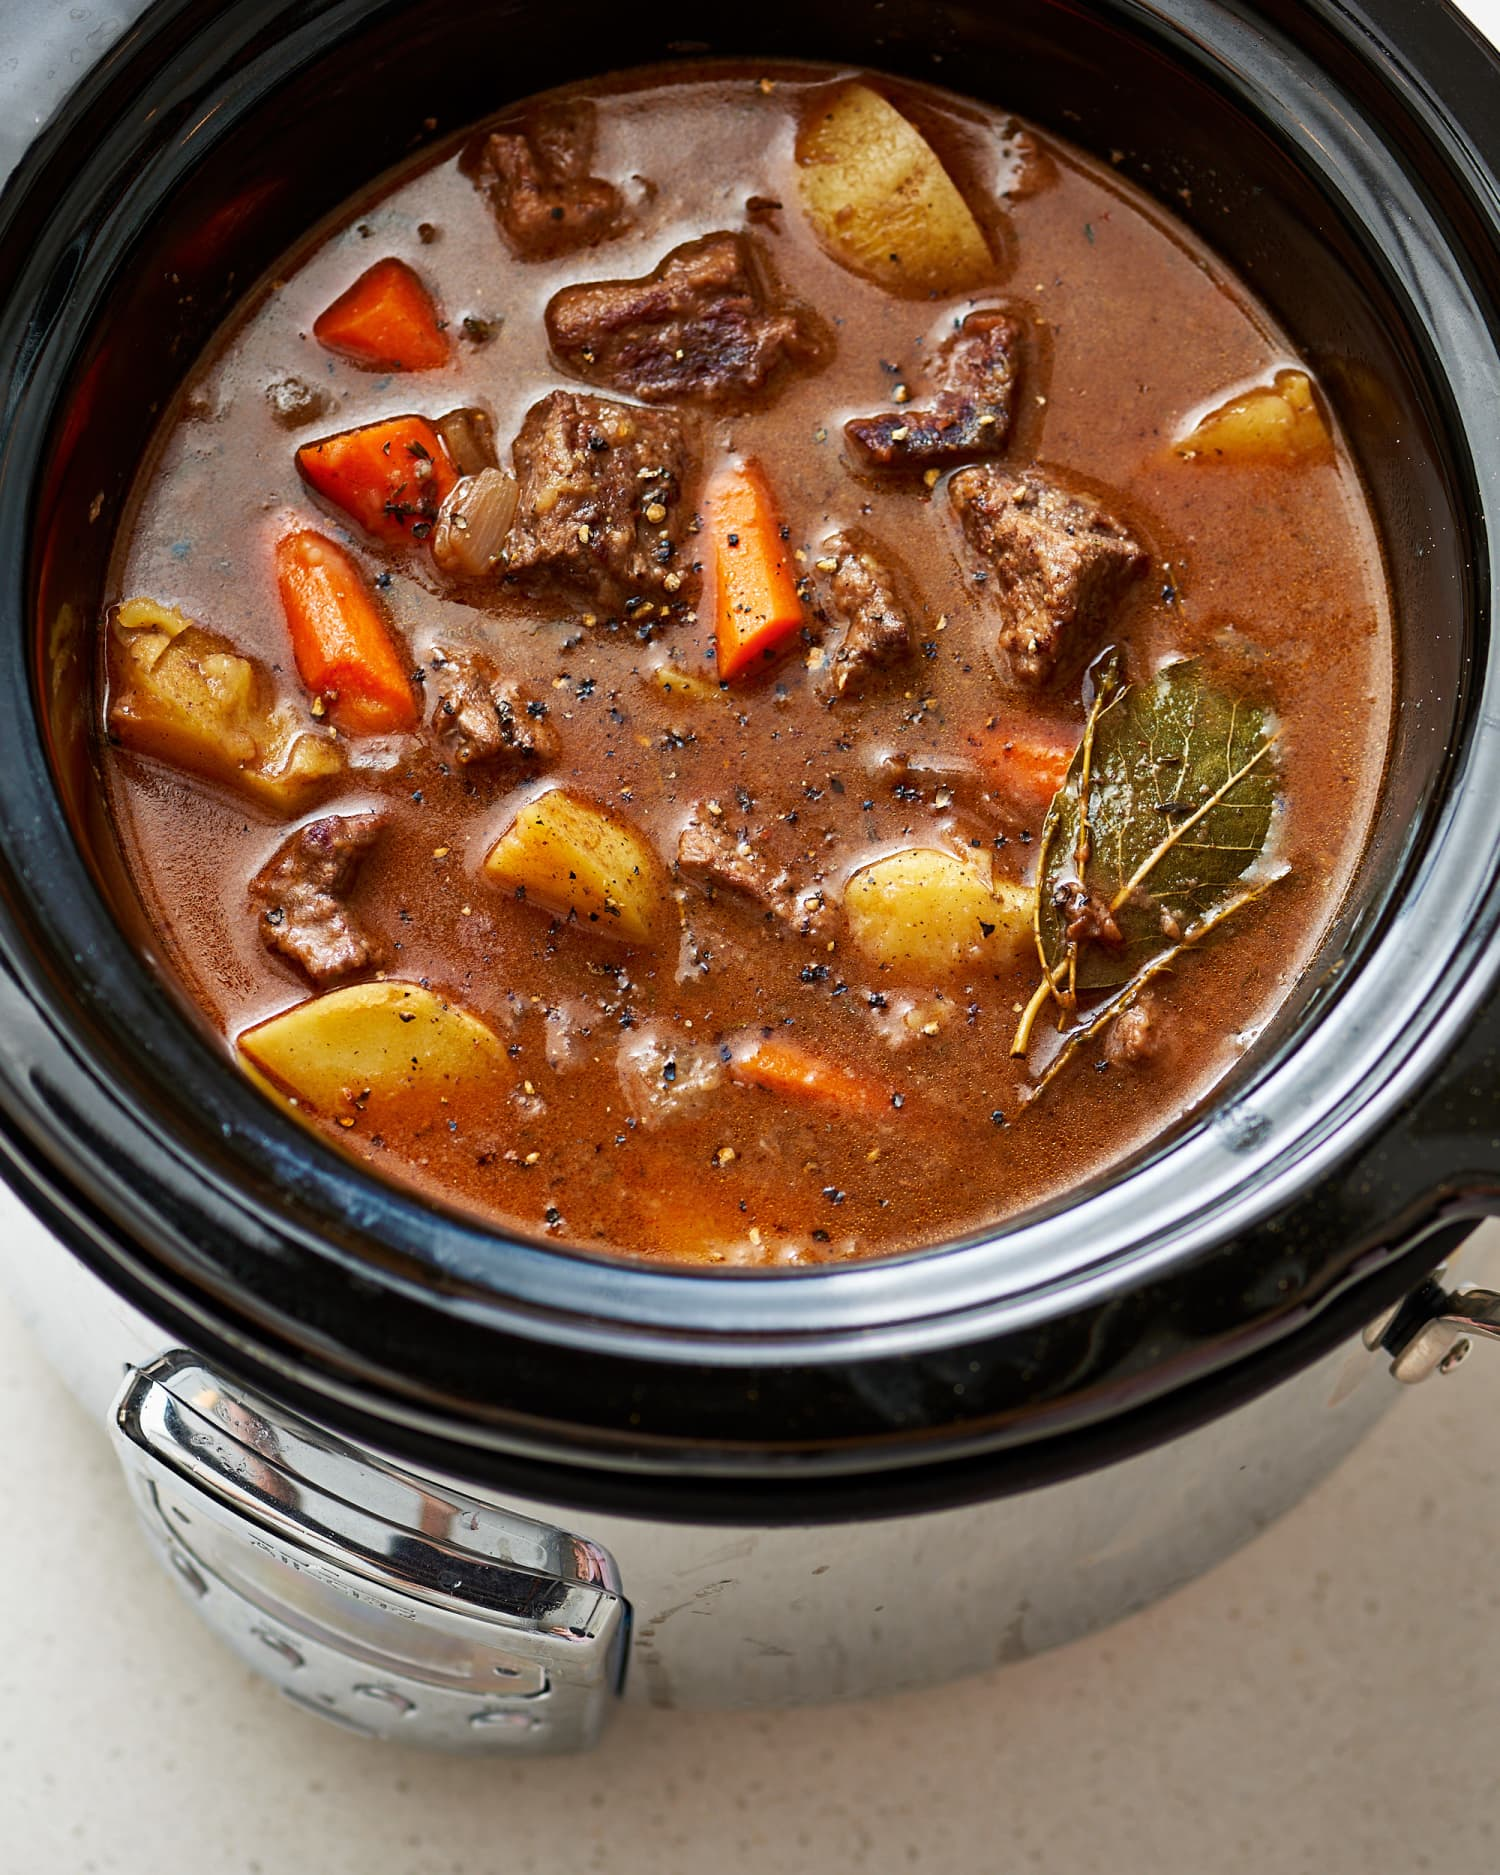 The Slow Cooker Stew Mistake You're Probably Making — And How to Fix It